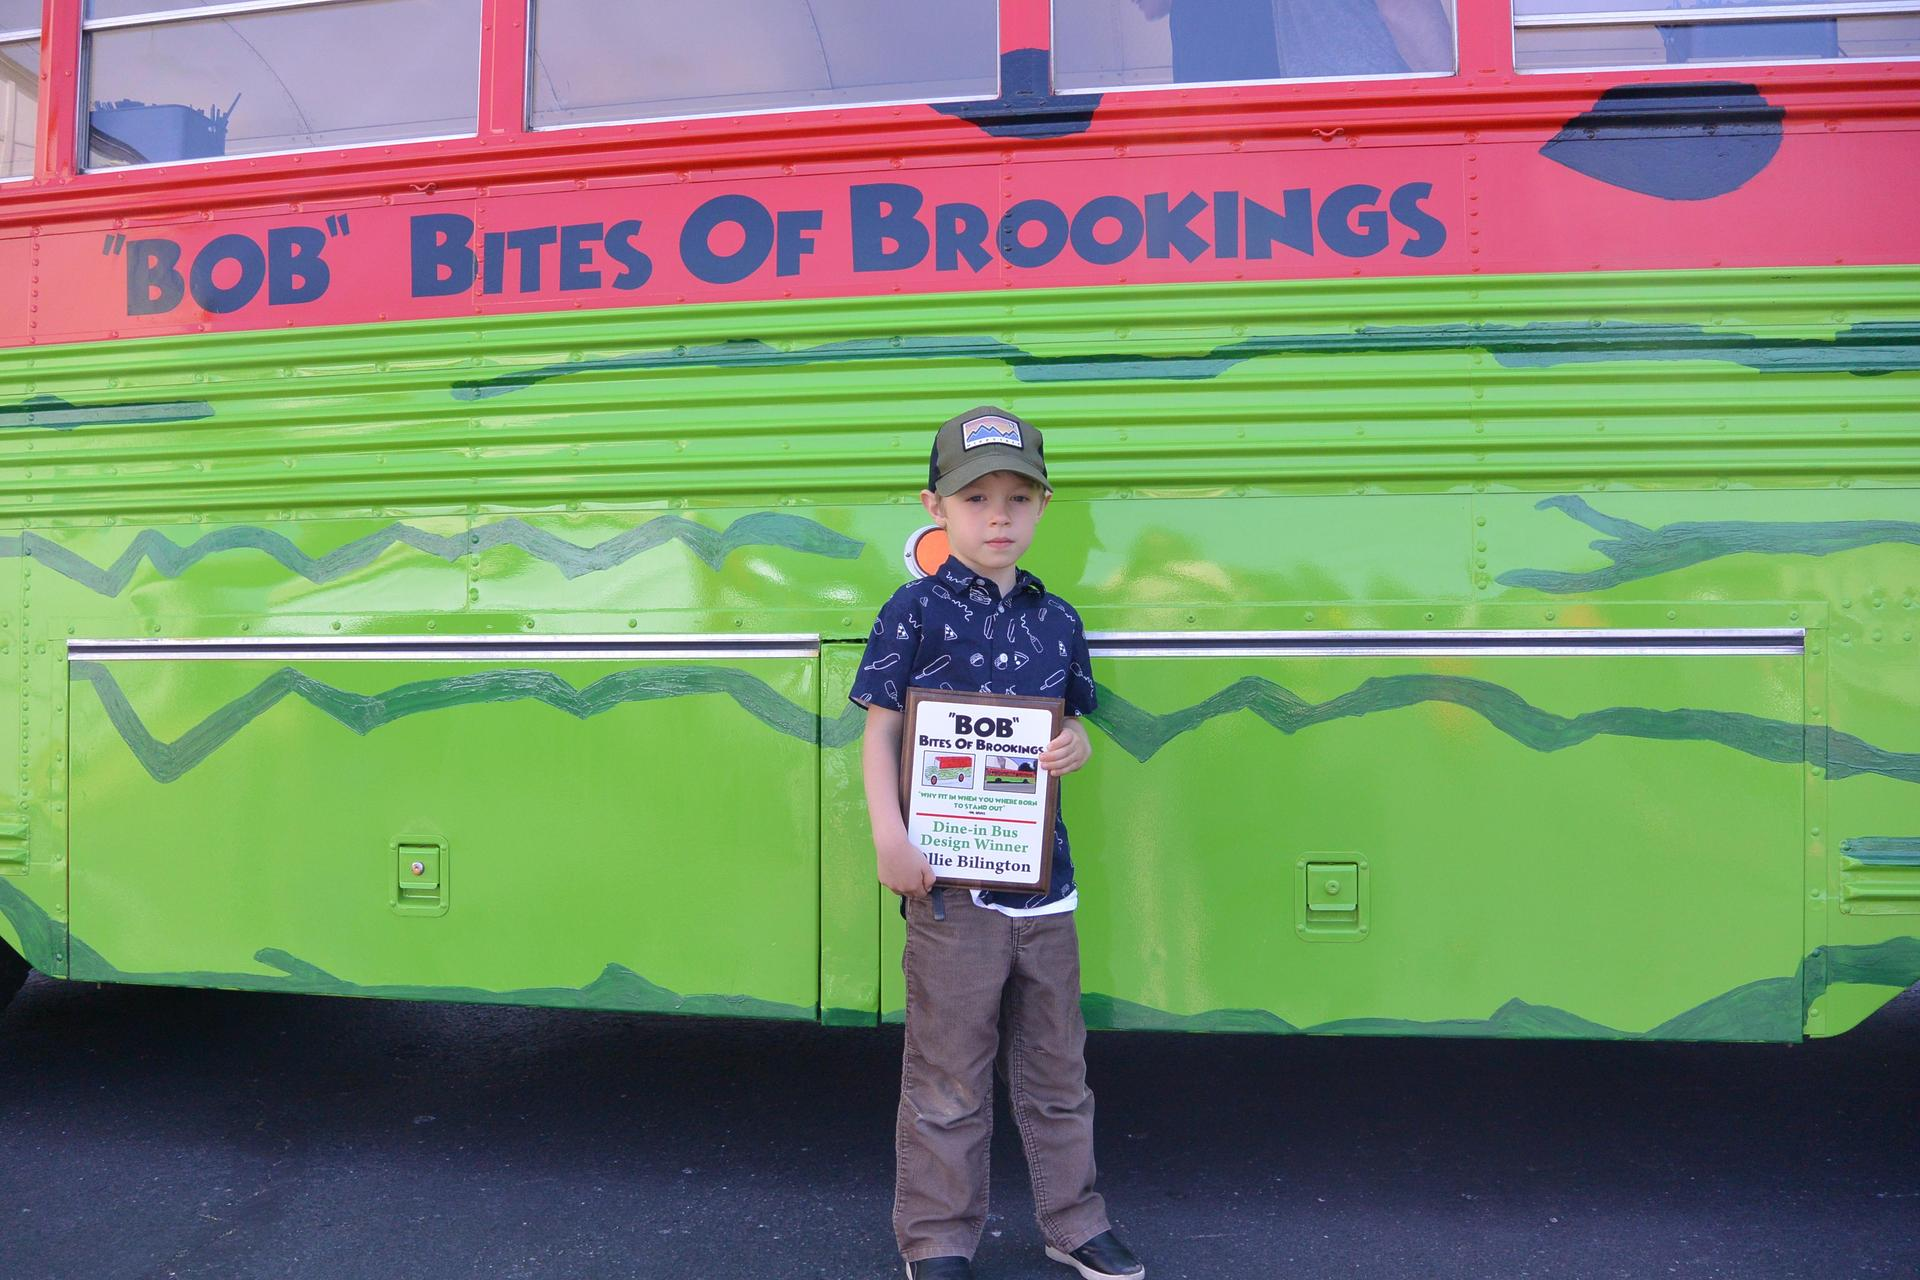 Oli in front of bus